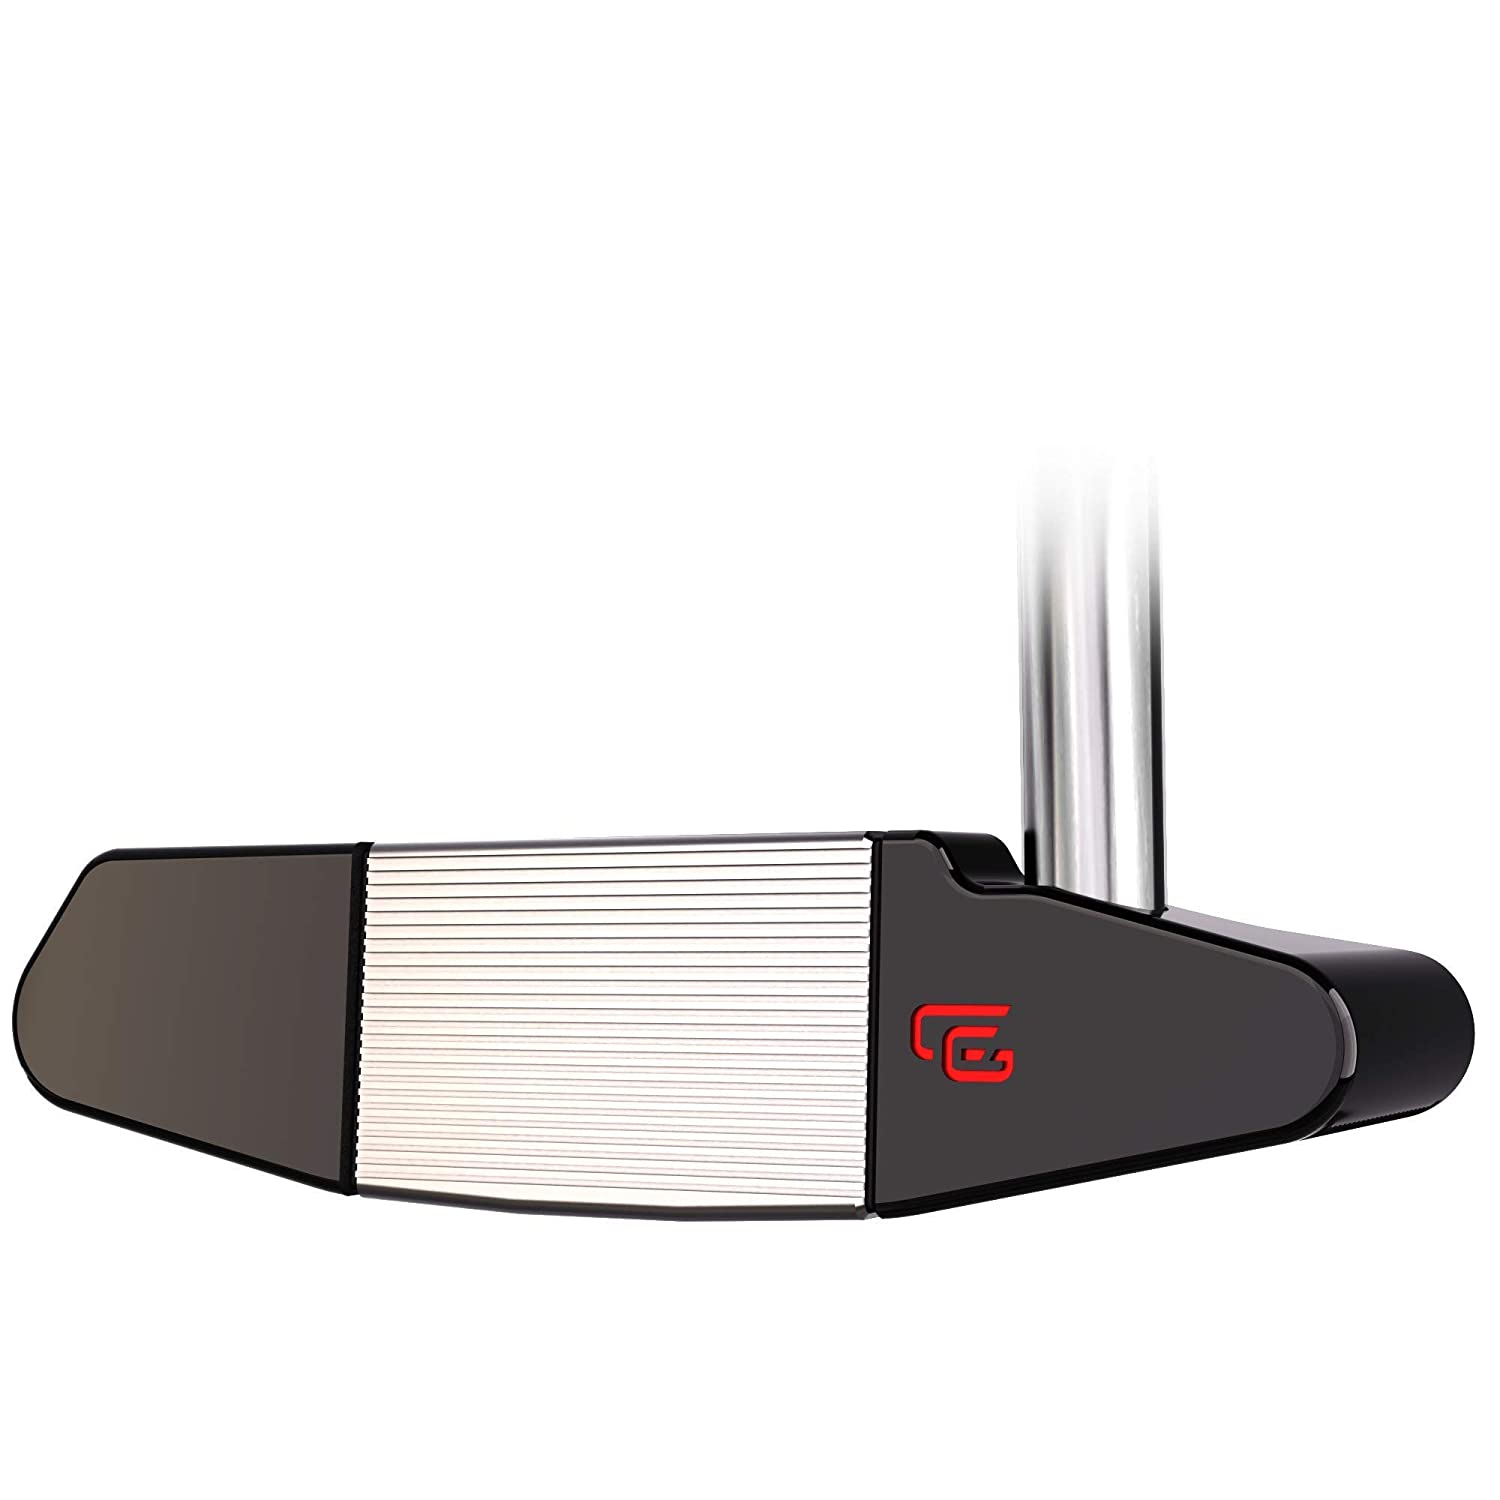 Amazon.com: Manguito de golf CVG 33FIVE BD con tecnología ...